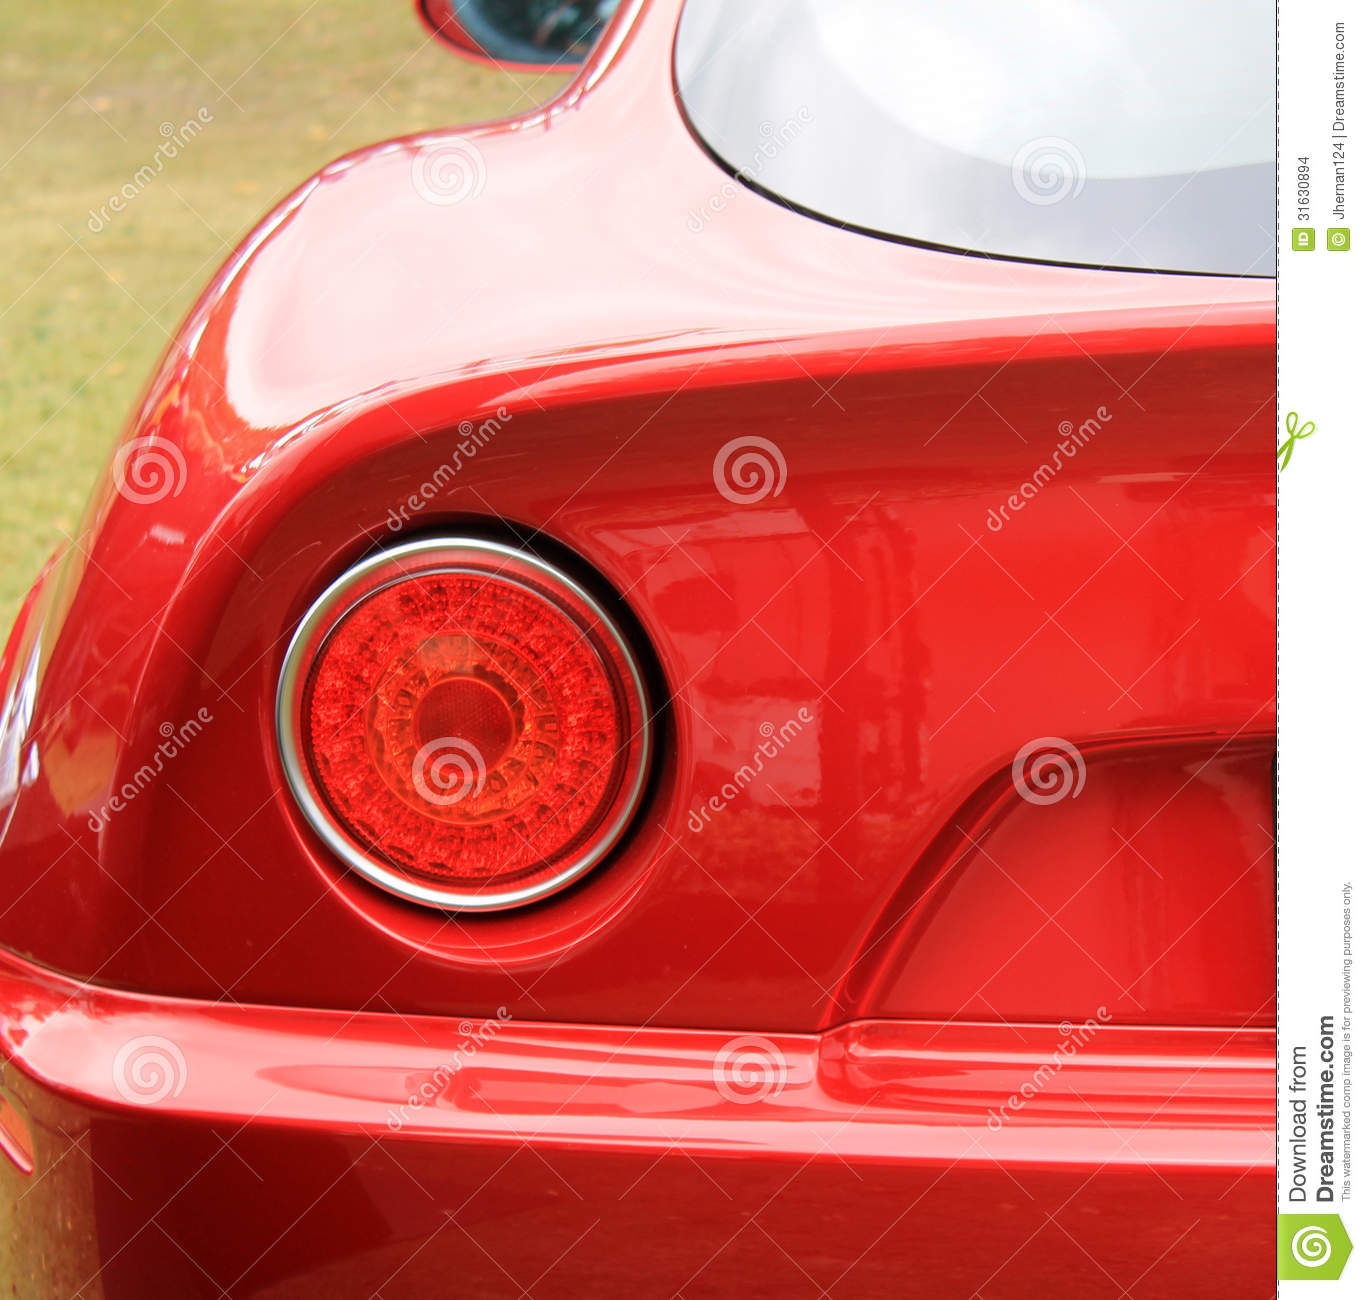 Modern classic italian sports car rear tail lamp